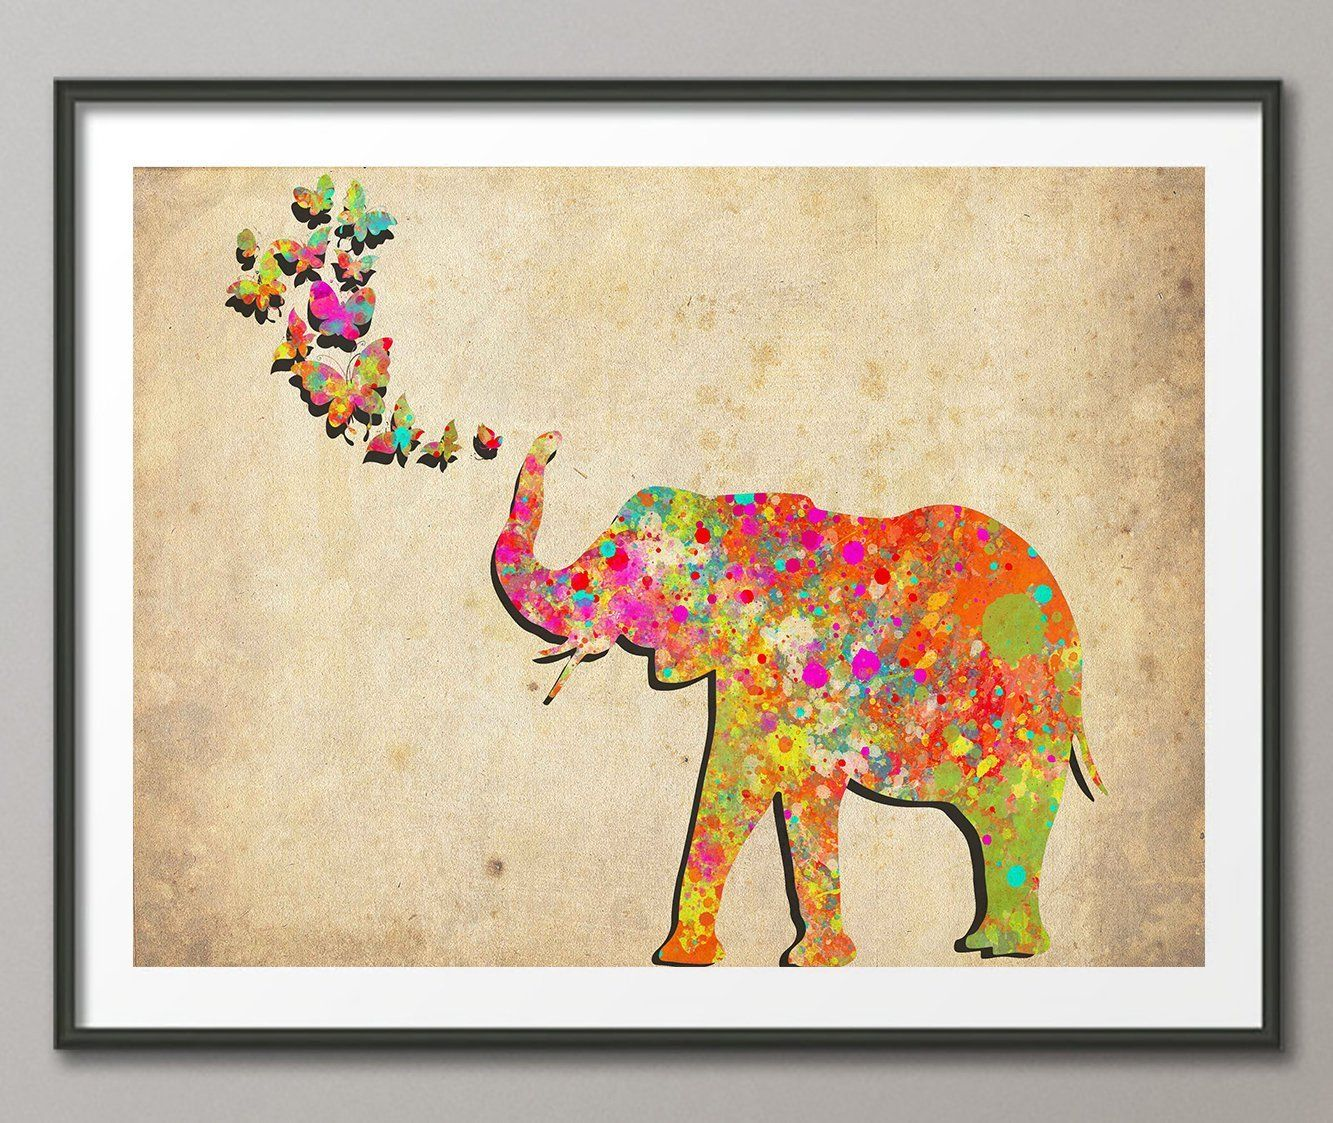 Vintage Elephant Spraying Butterfly Watercolor Posters Art Prints Wall Decor Artworks Dining Room